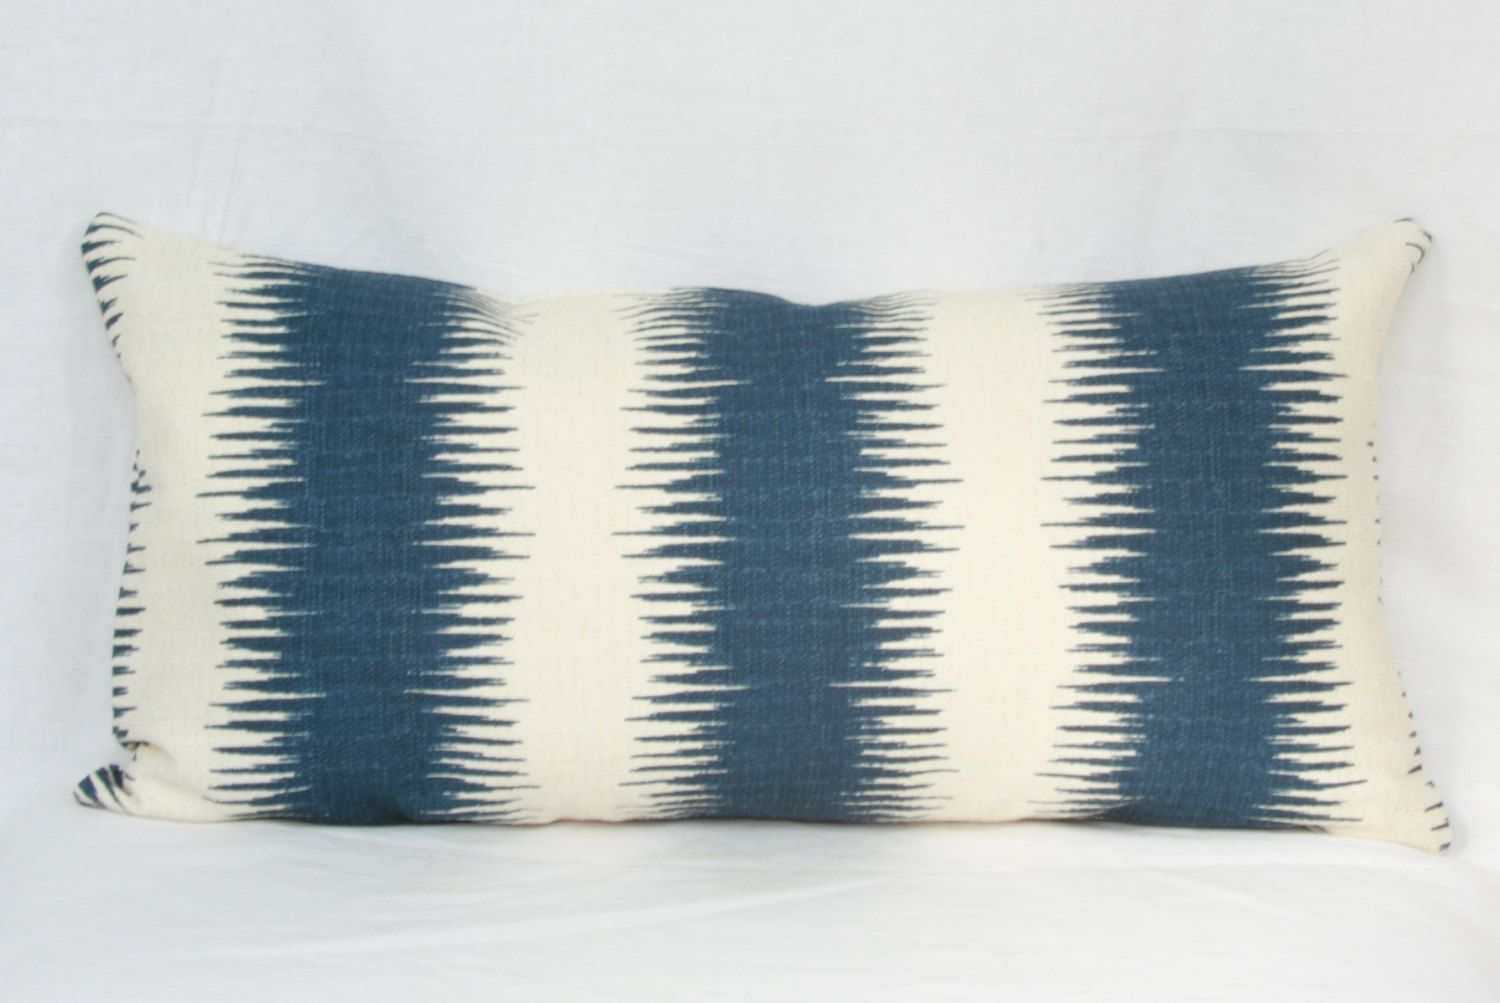 16X26 Pillow Insert Blue Natural Tribal Stripe Throw Pillow Cover 12X20 12X24 14X24